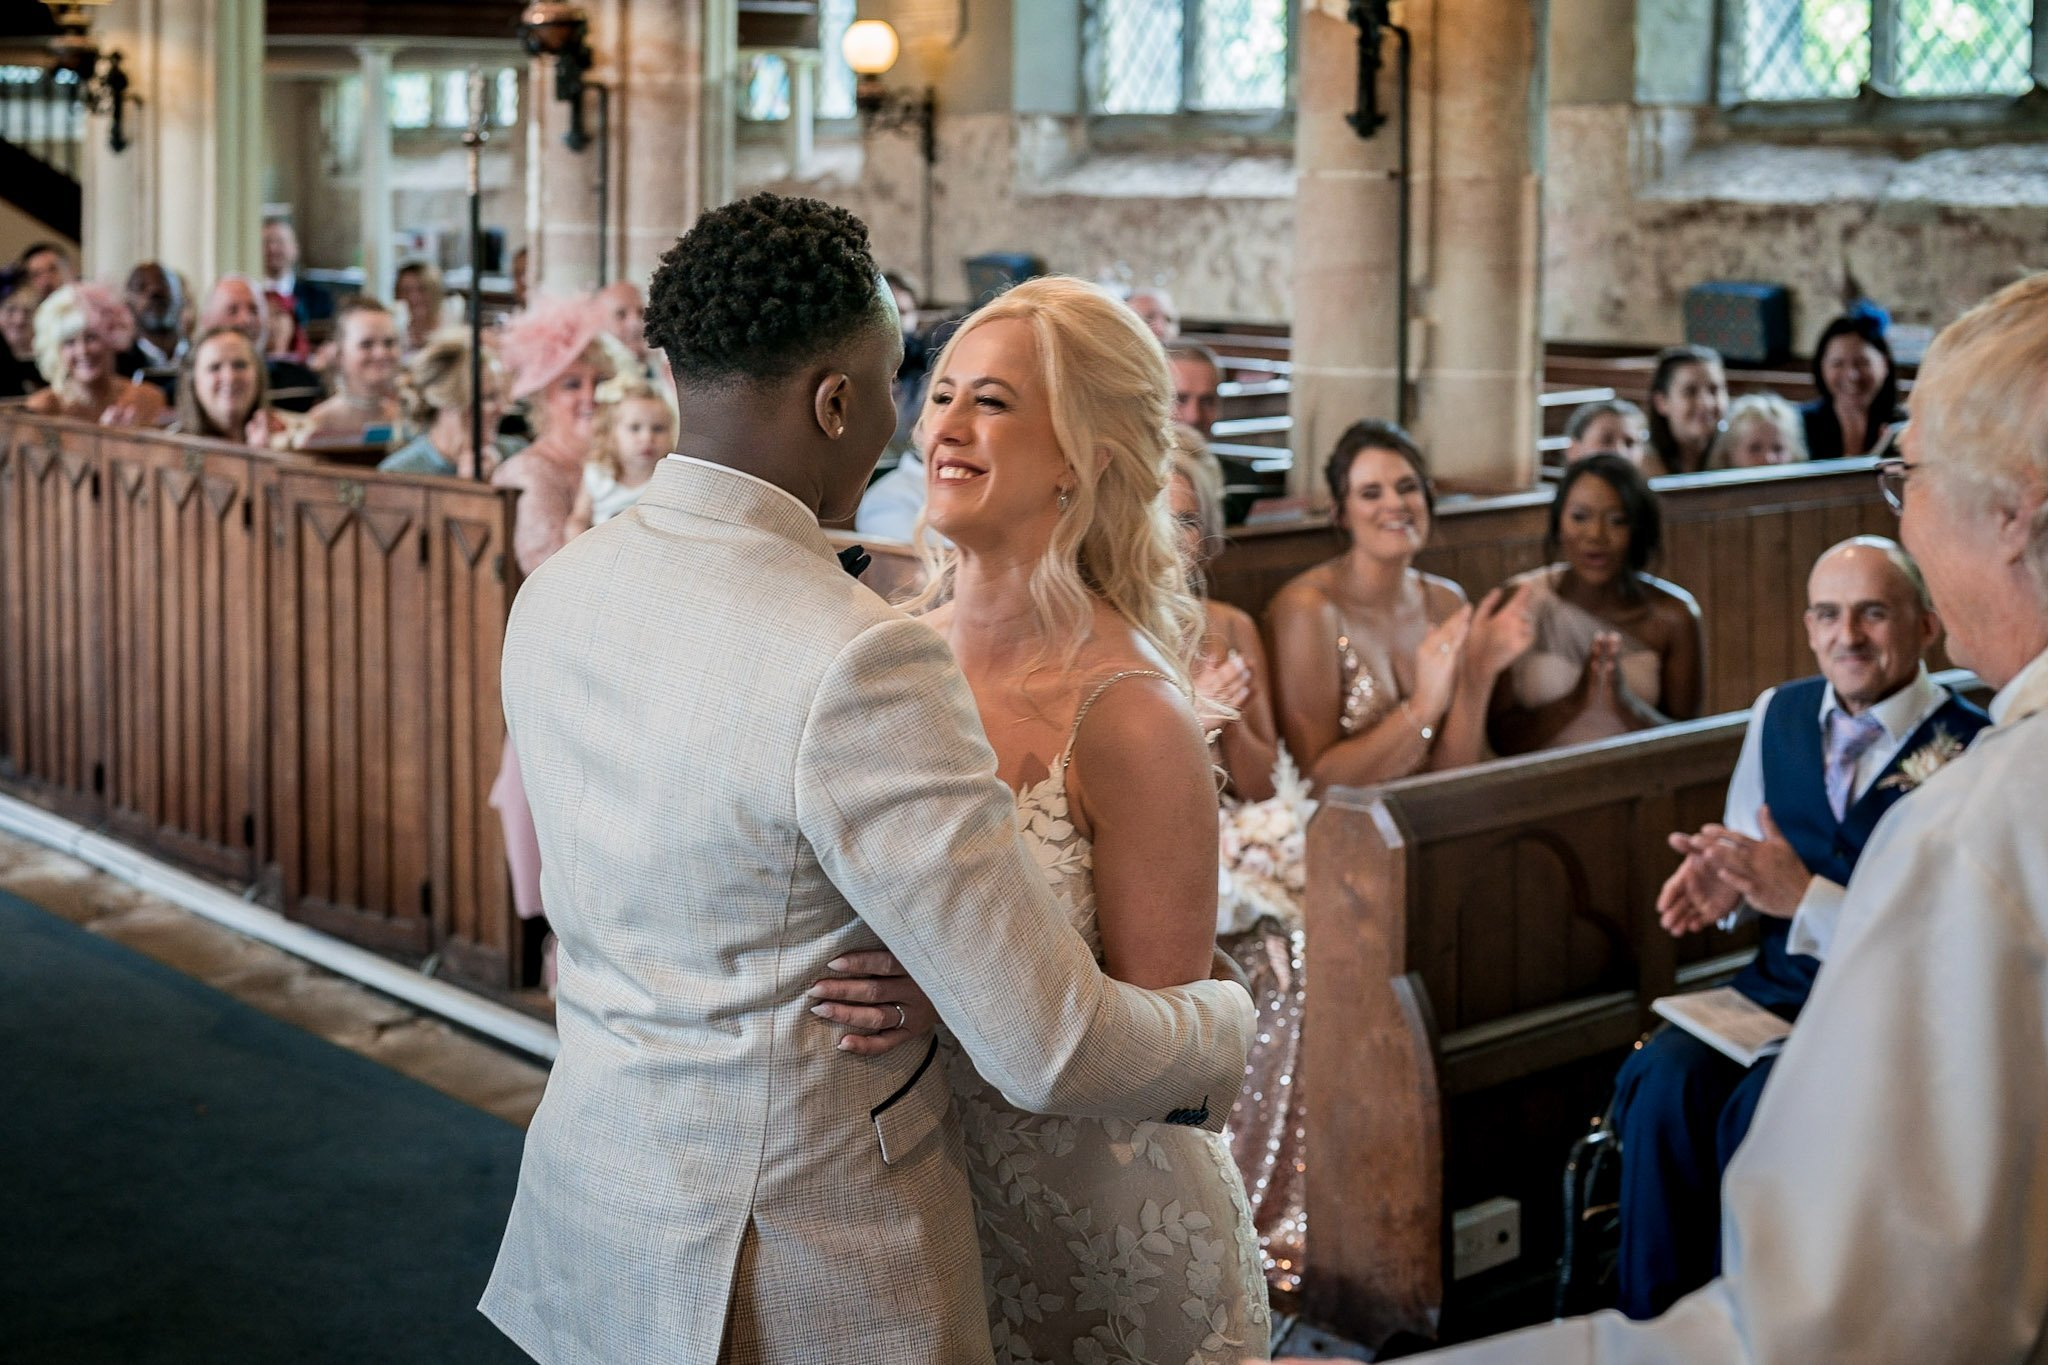 Your Favourite Frame YFFUK Mwasuku St Michaels Church Appleby Magna bride and groom having their first kiss as husband and wife smiles all around